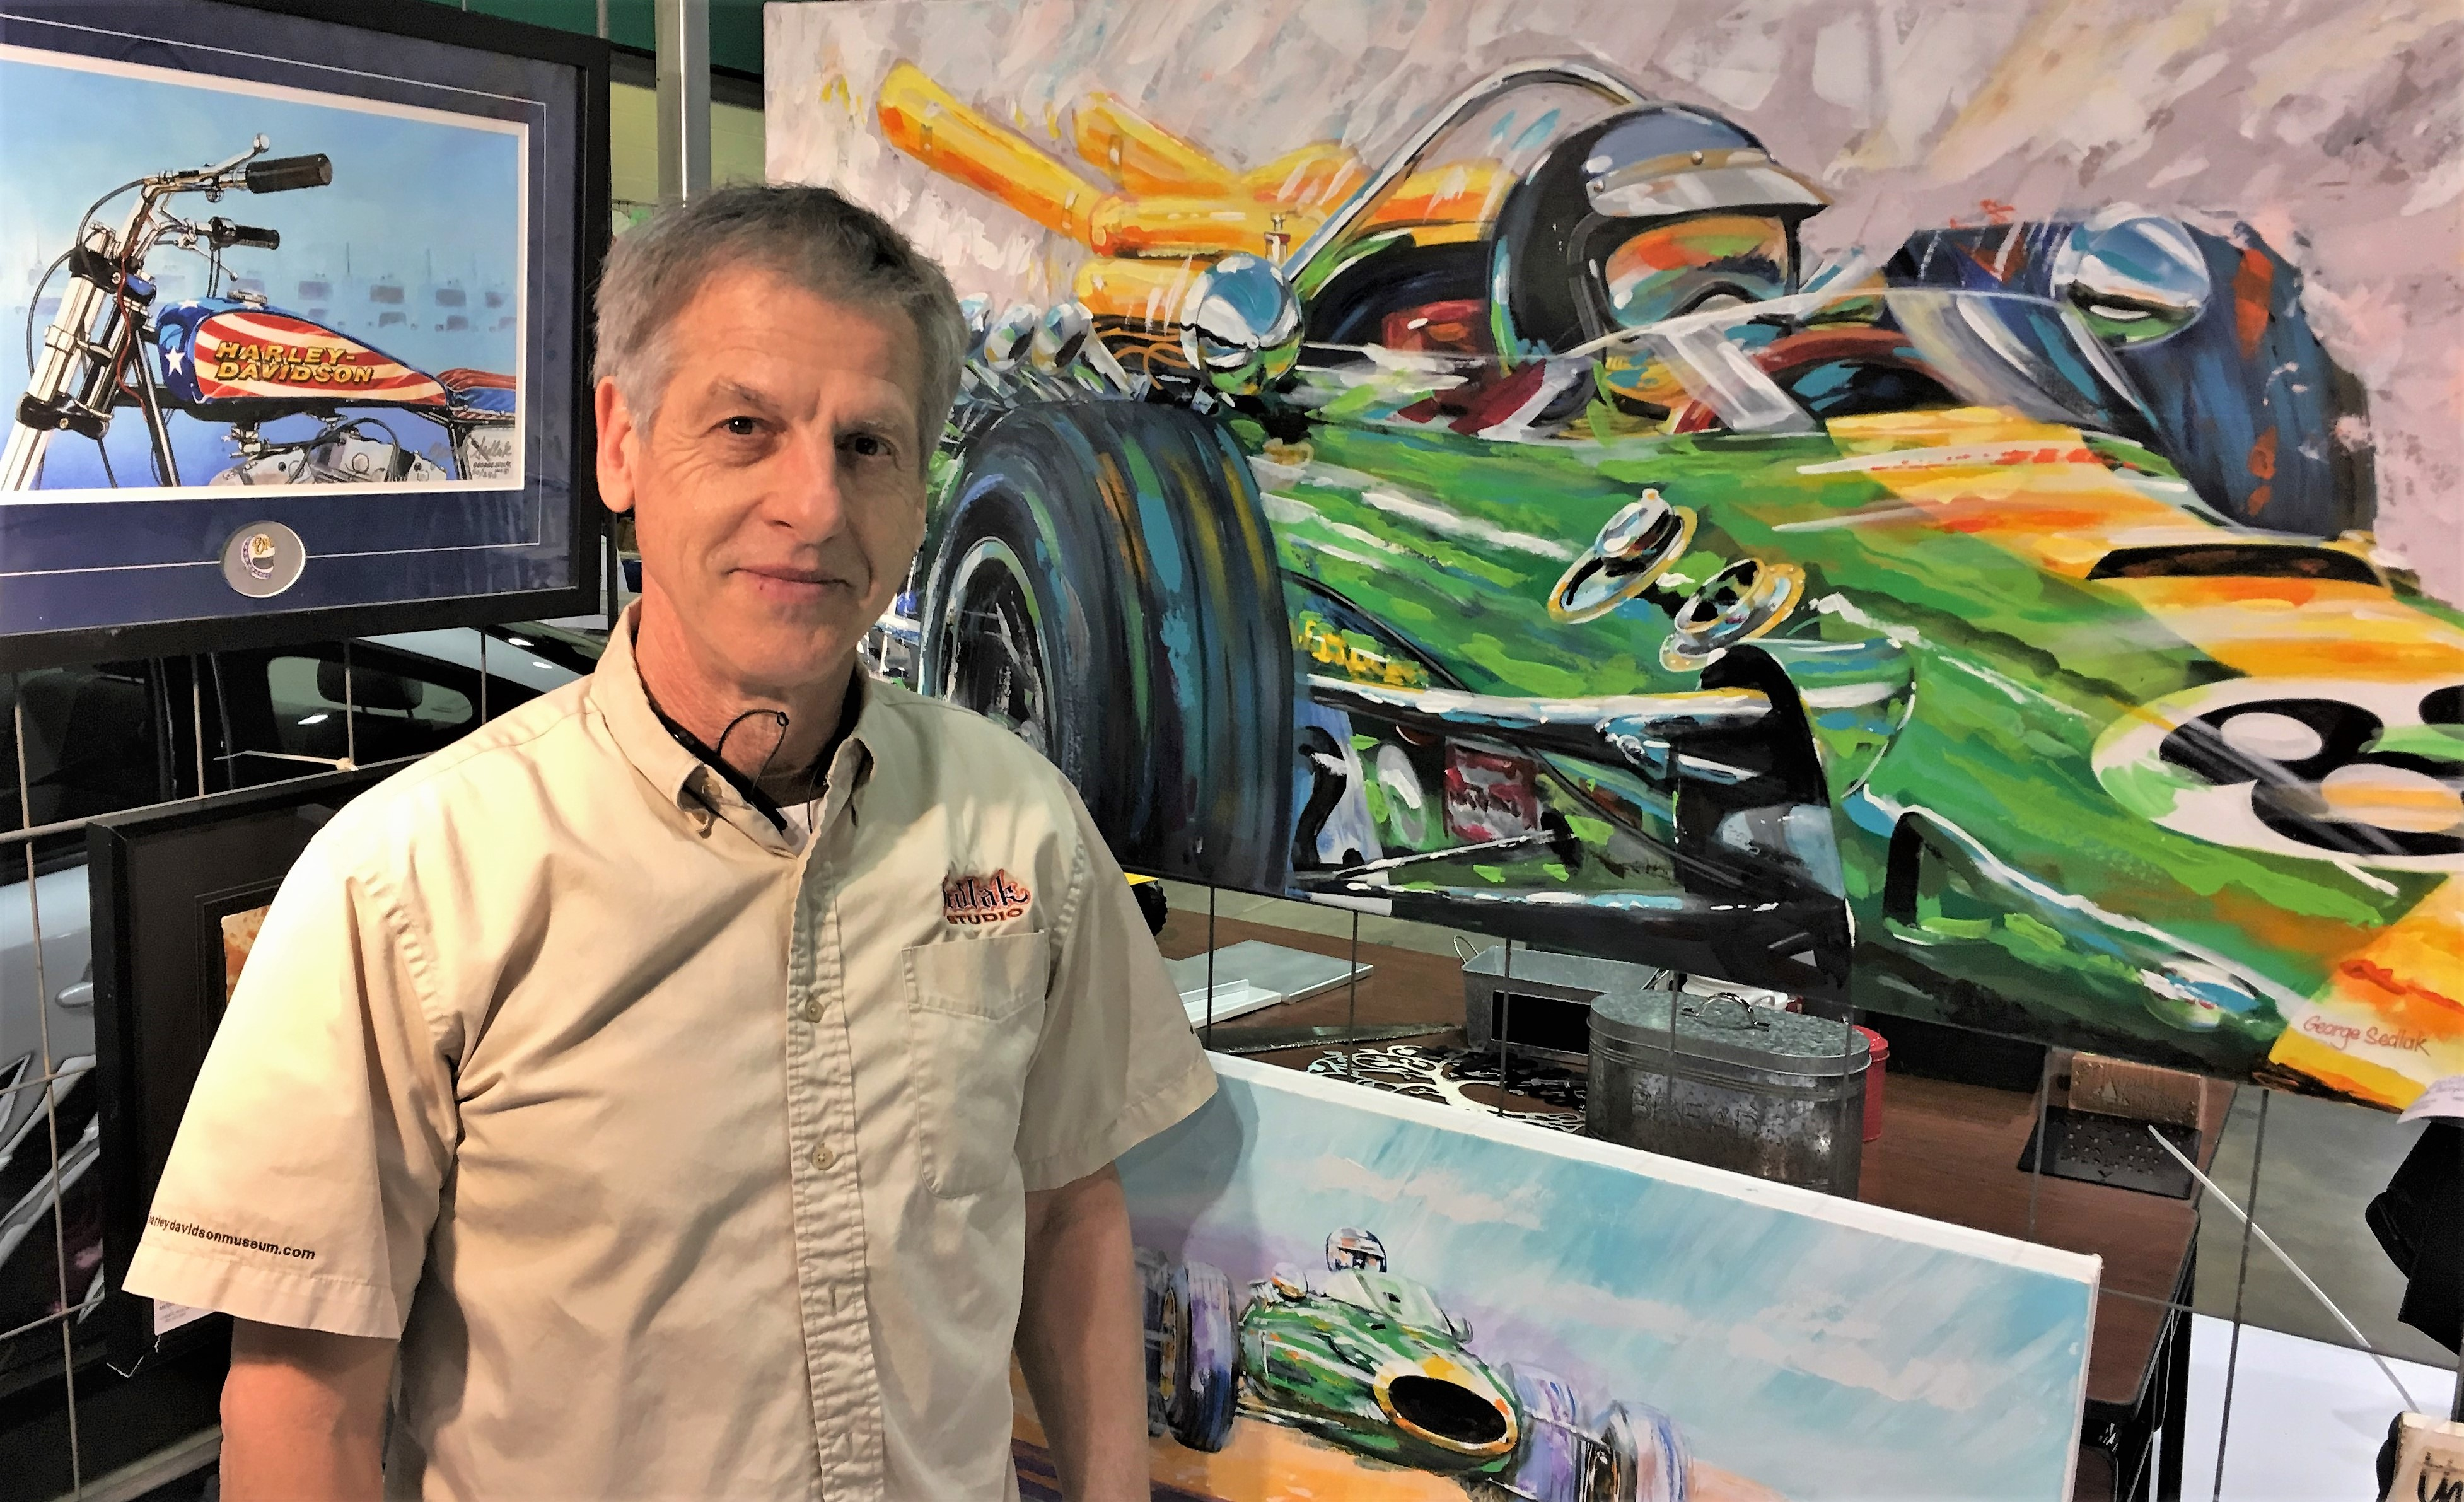 George Sedlak, Color Me Lucky: George Sedlak on becoming Evel Knievel's painter, ClassicCars.com Journal